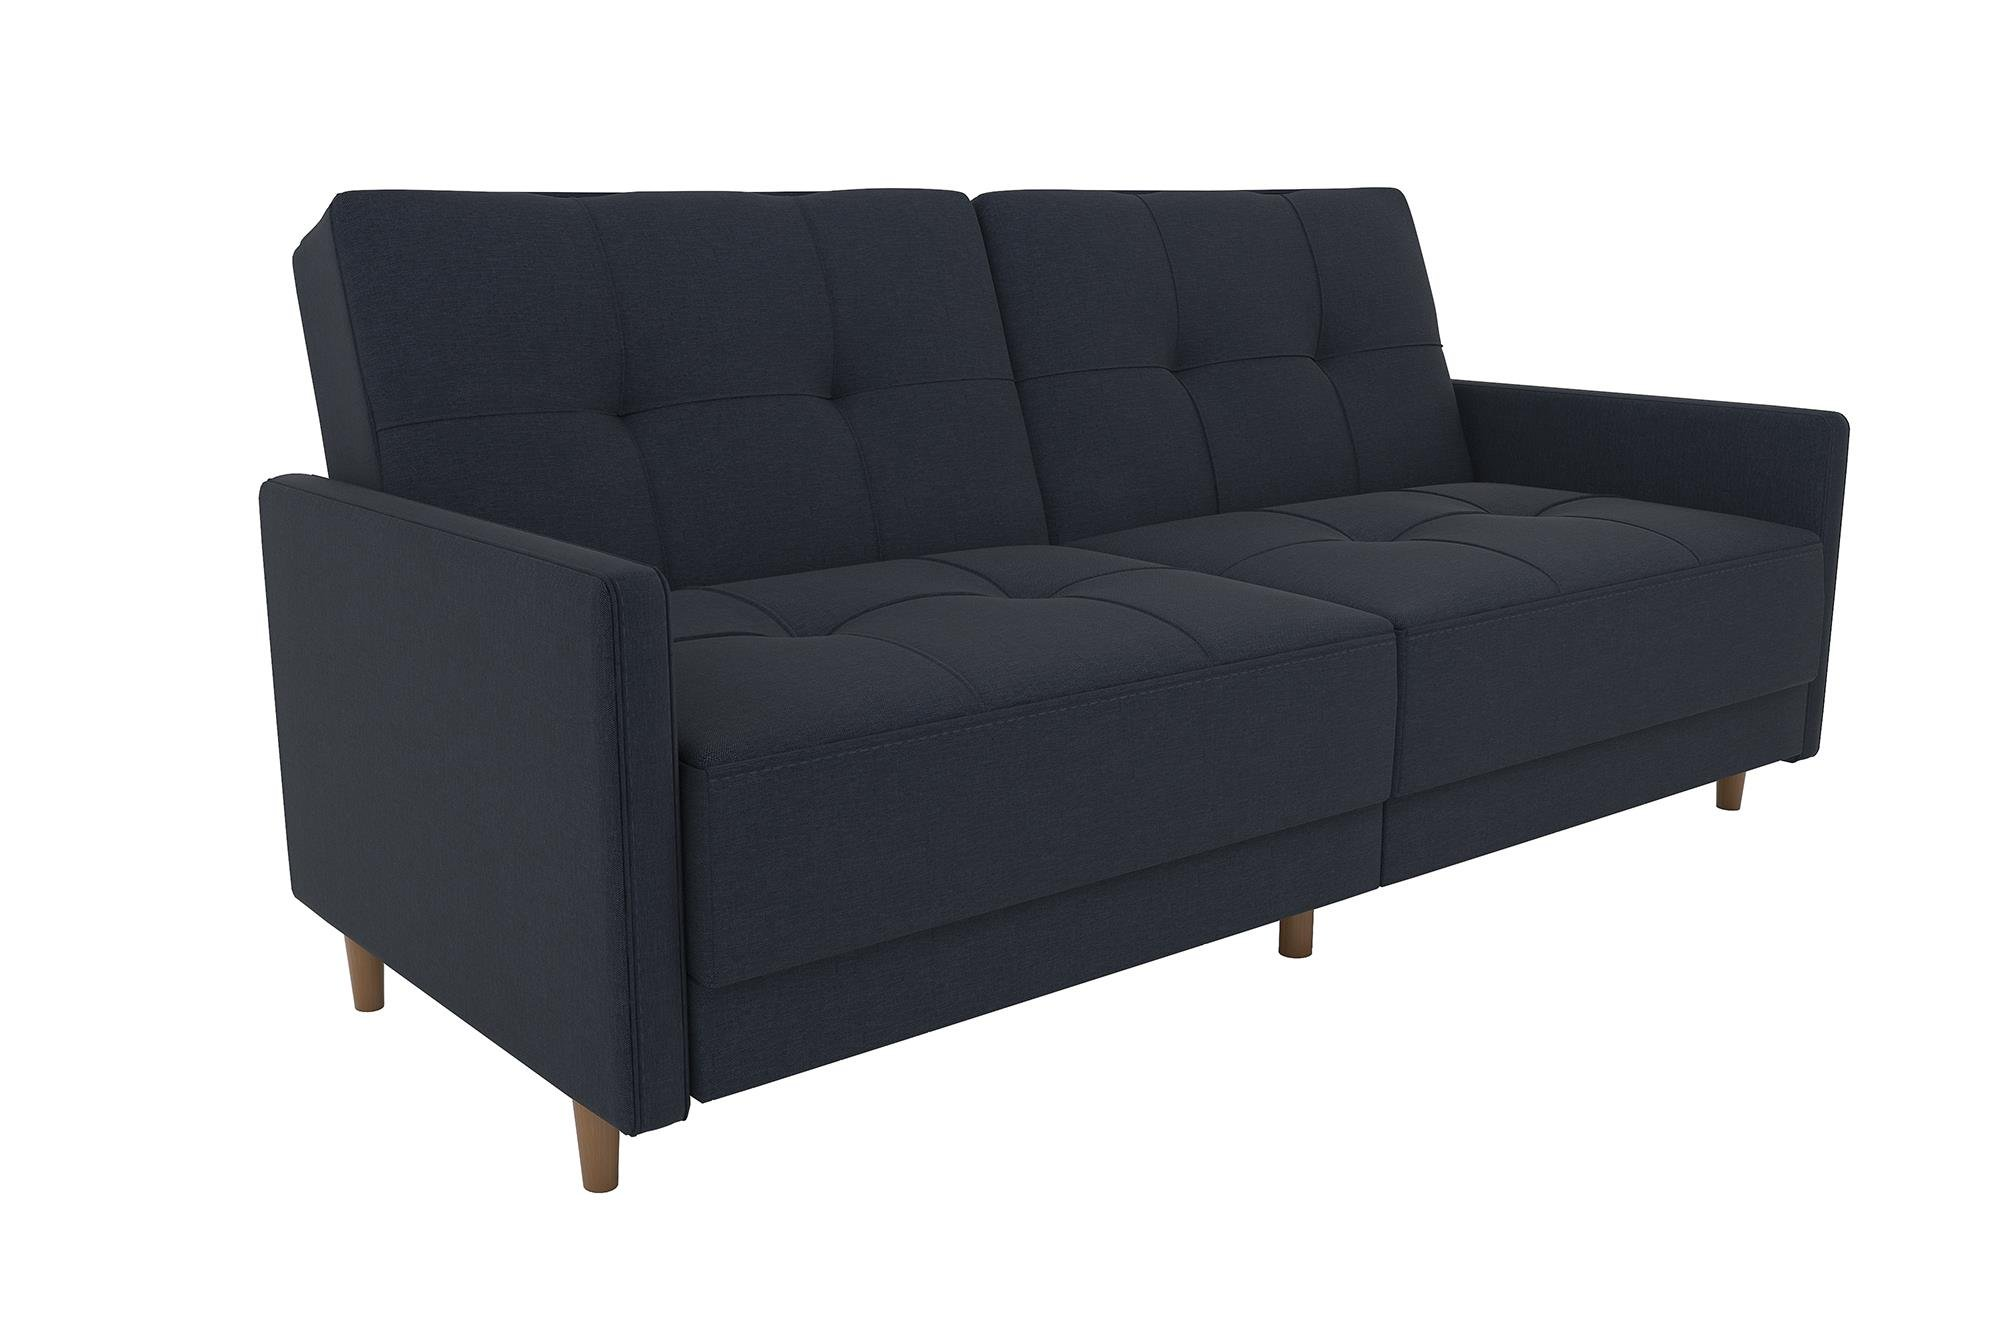 Buy Dhp Andora Coil Futon Sofa Bed Couch With Mid Century Modern